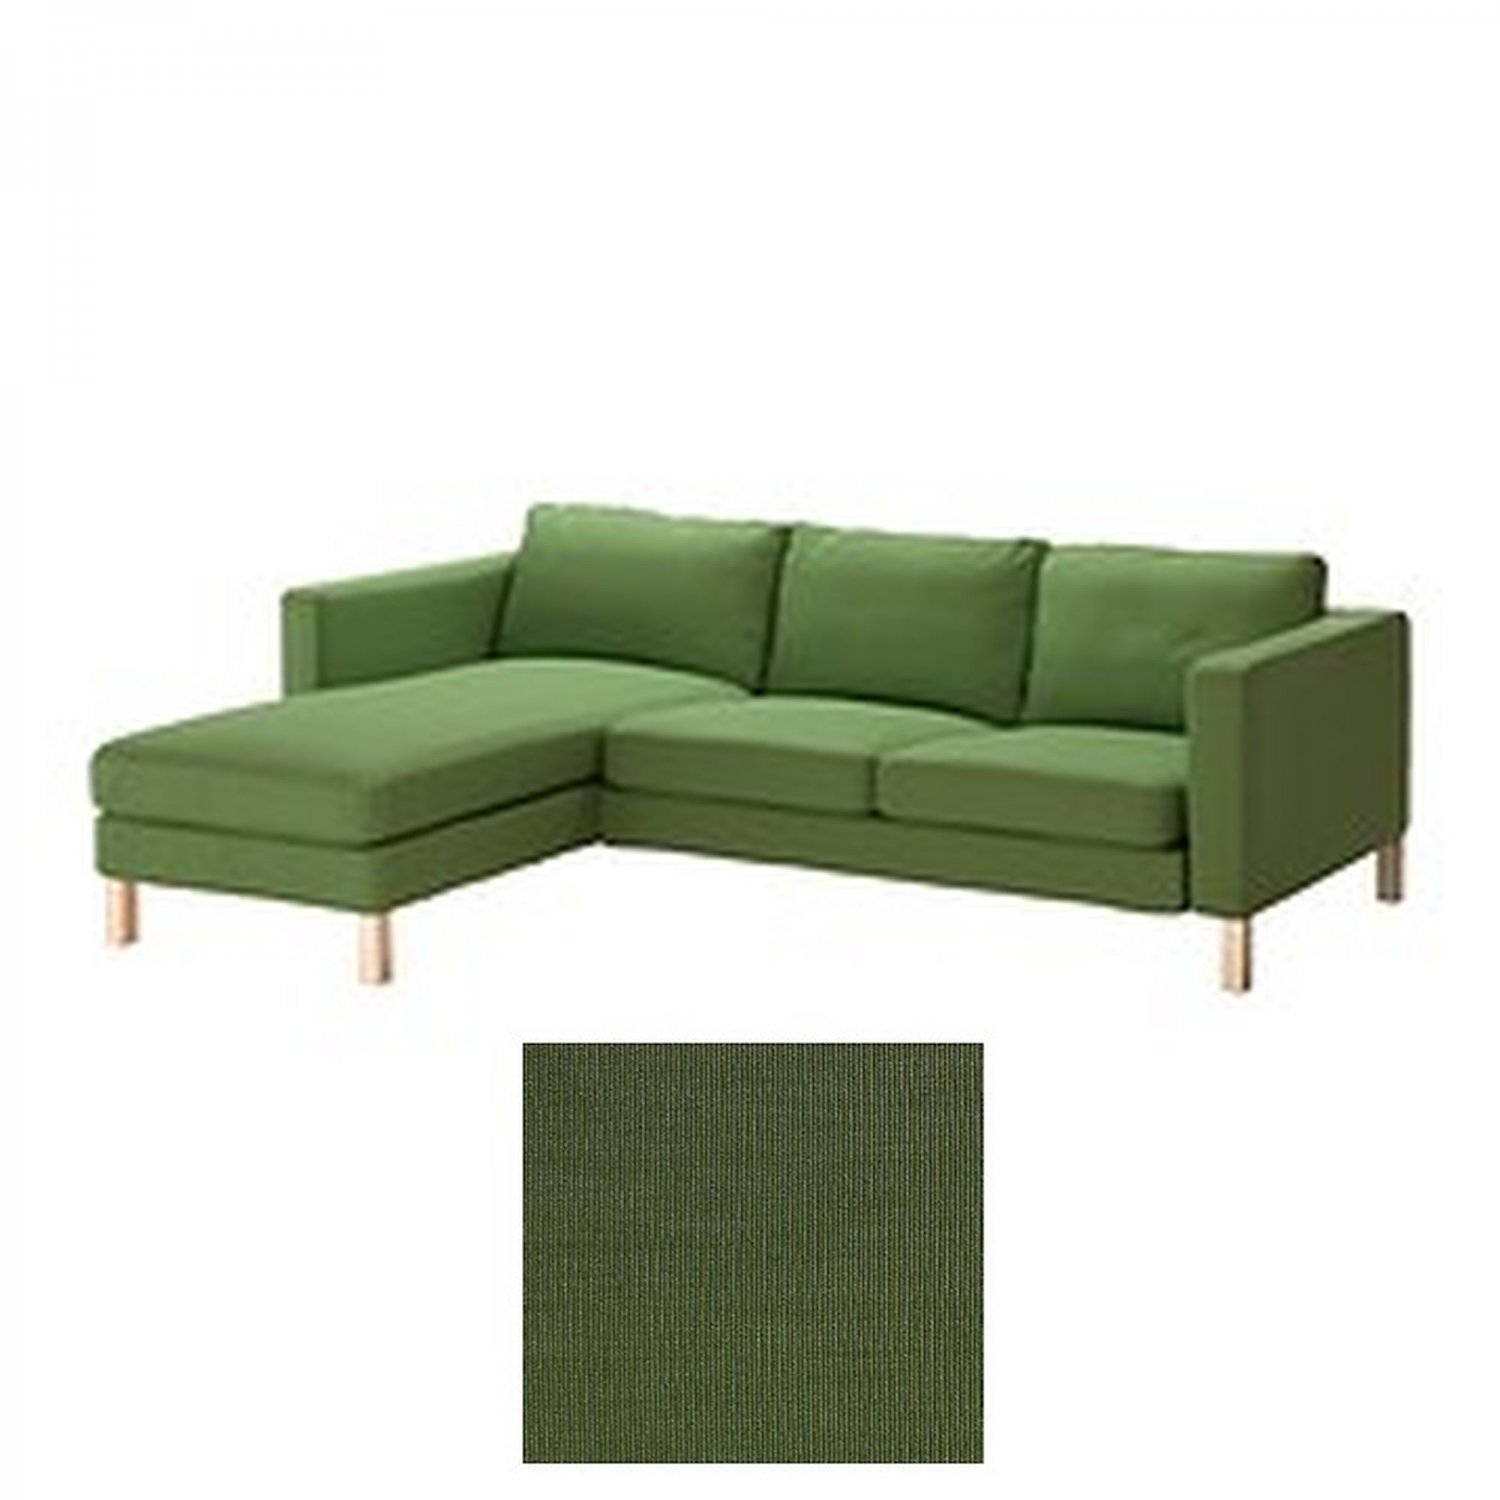 Ikea karlstad 2 seat loveseat sofa and chaise slipcover cover sivik green add on last one Loveseat slipcover